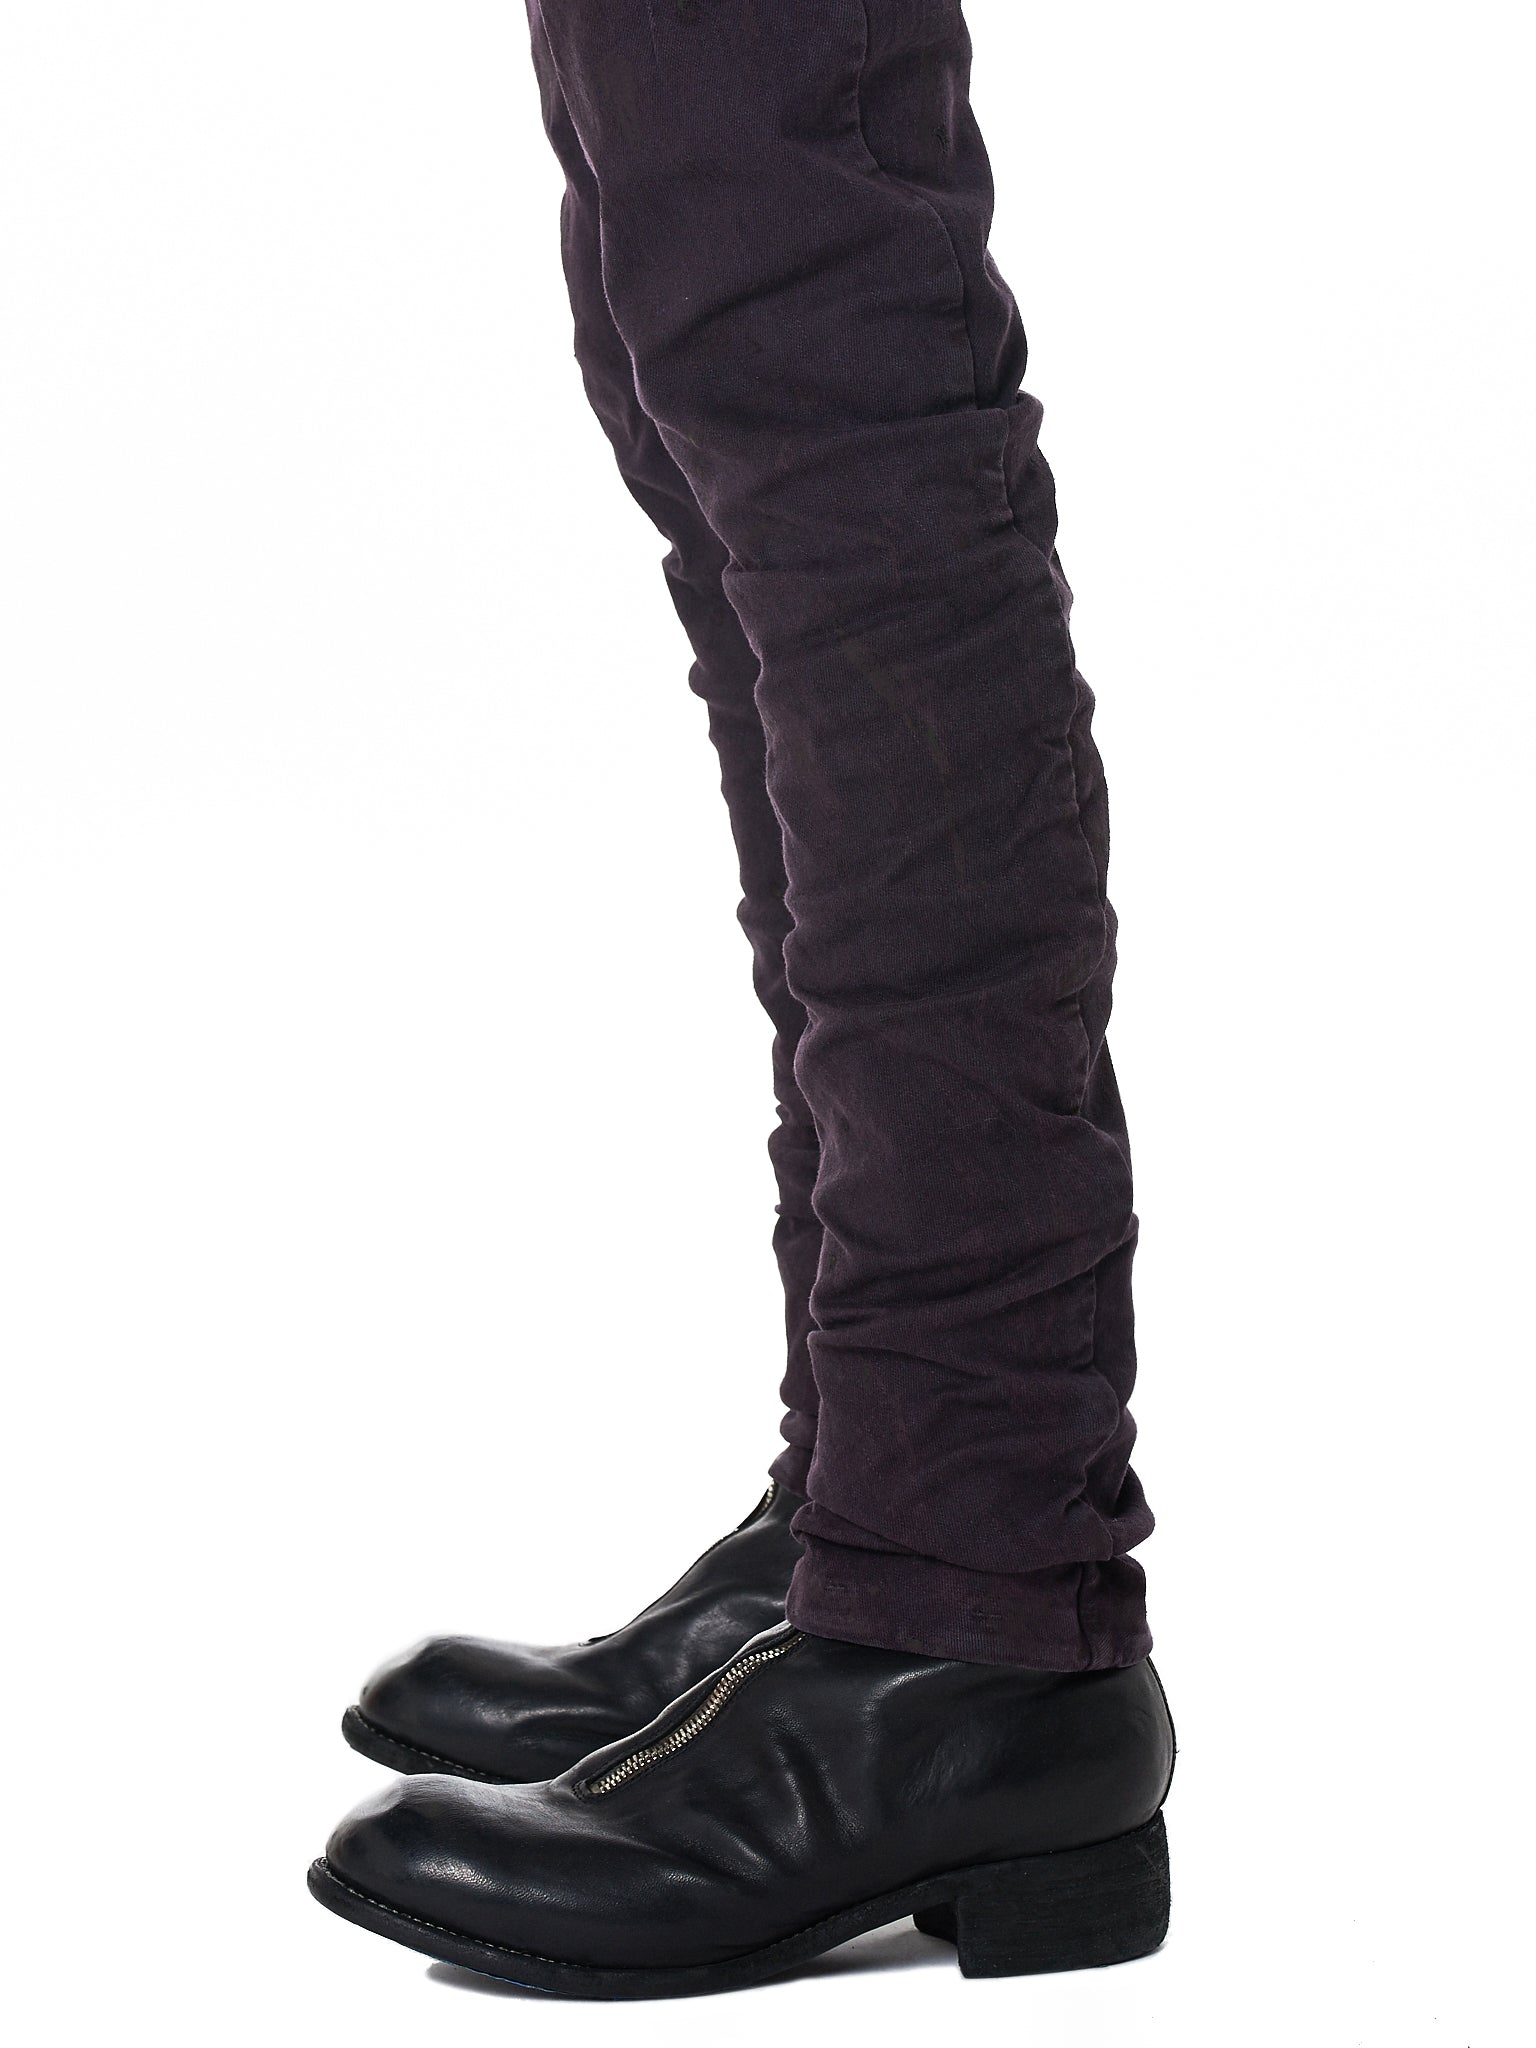 Boris Bidjan Saberi 'P13' Purple Denim - Hlorenzo Detail 1